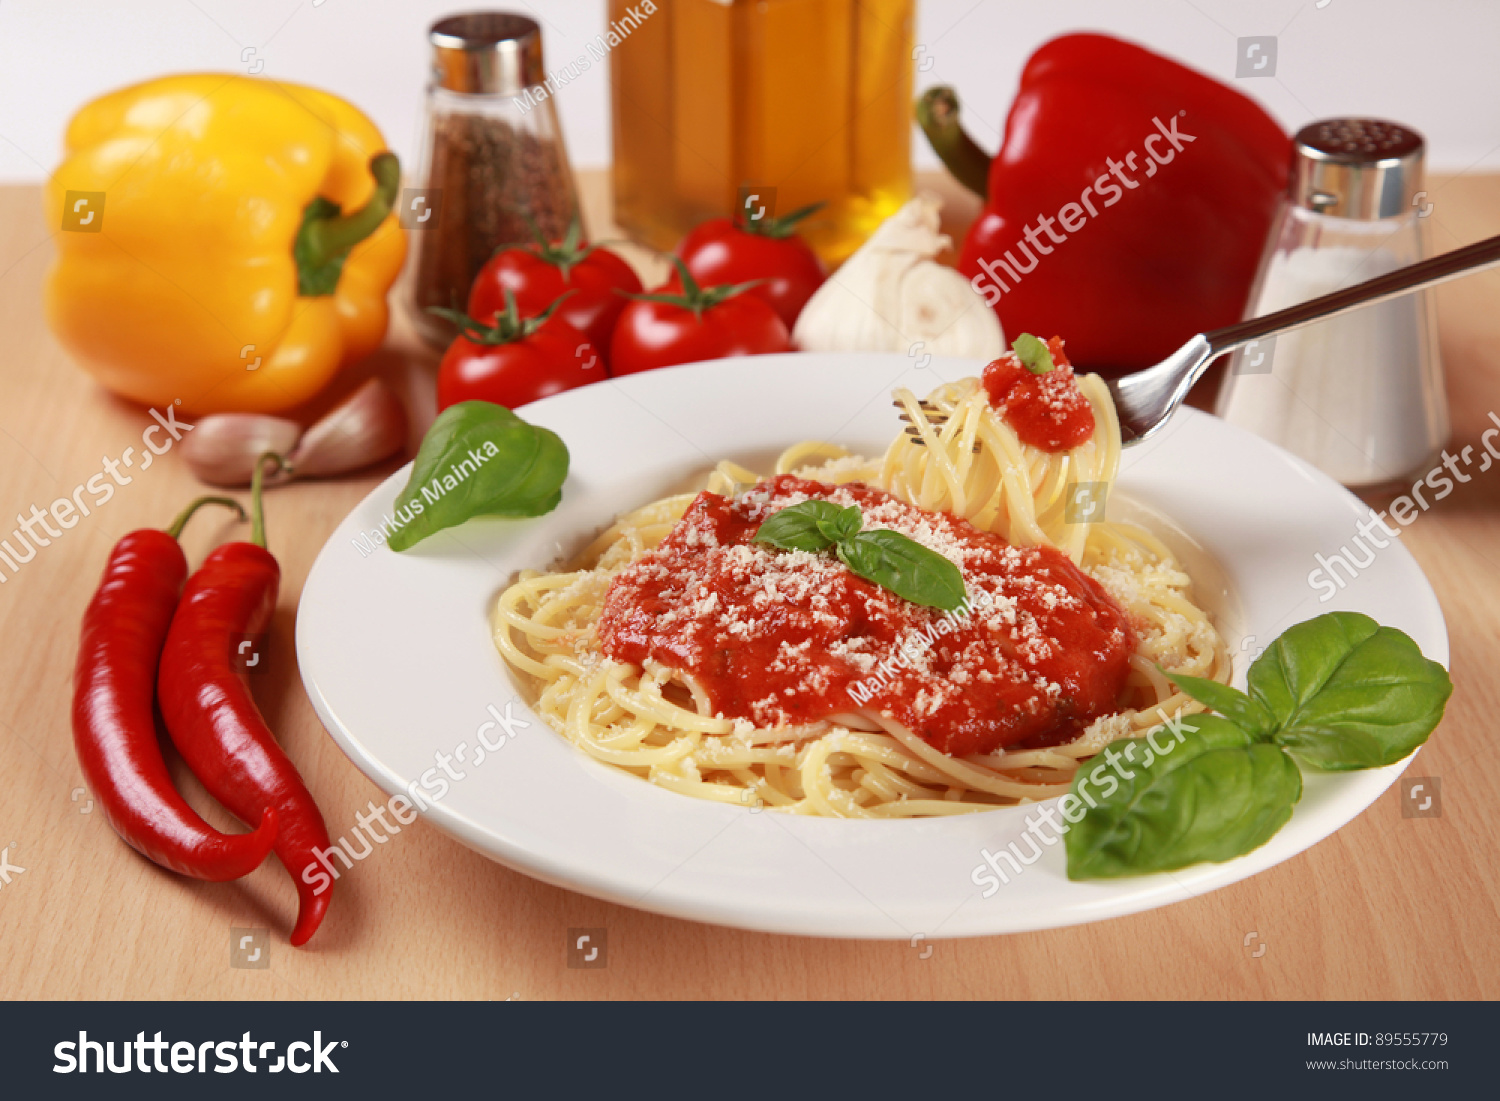 ... spaghetti are served with tomato sauce, basil and Parmesan cheese